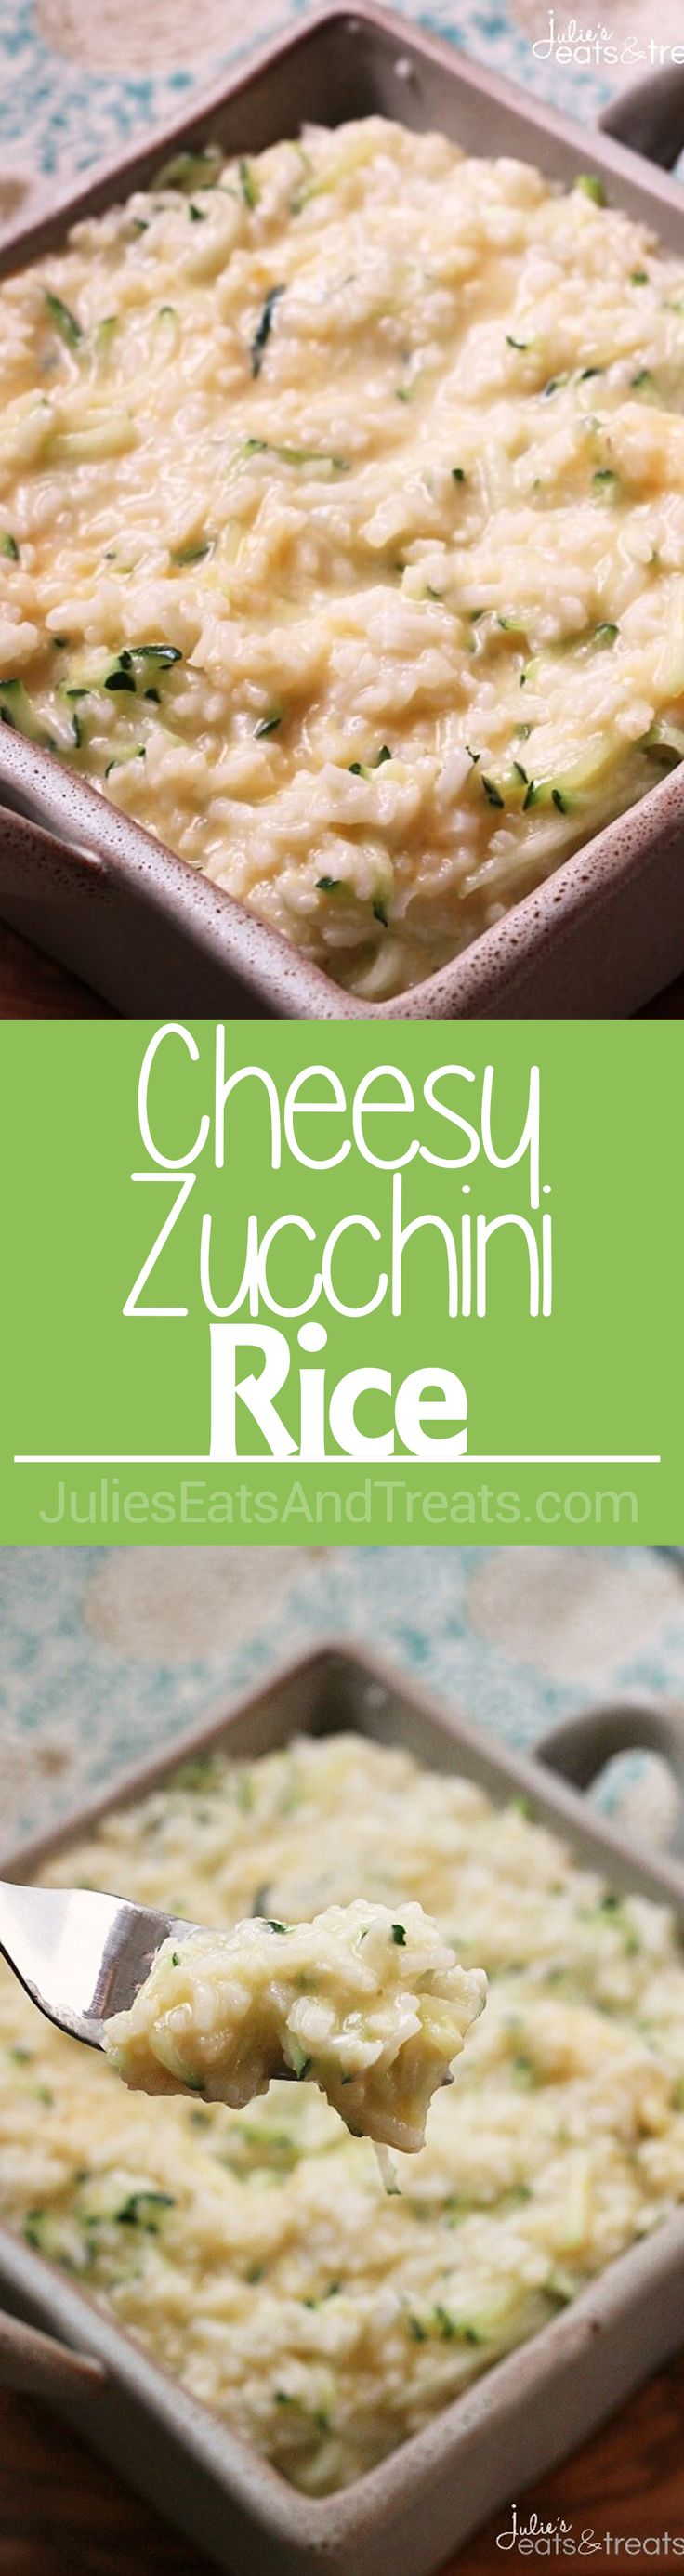 Cheesy Zucchini Rice ~ Easy Side Dish for the Week Night Loaded with Rice, Zucchini & Cheese! via @julieseats